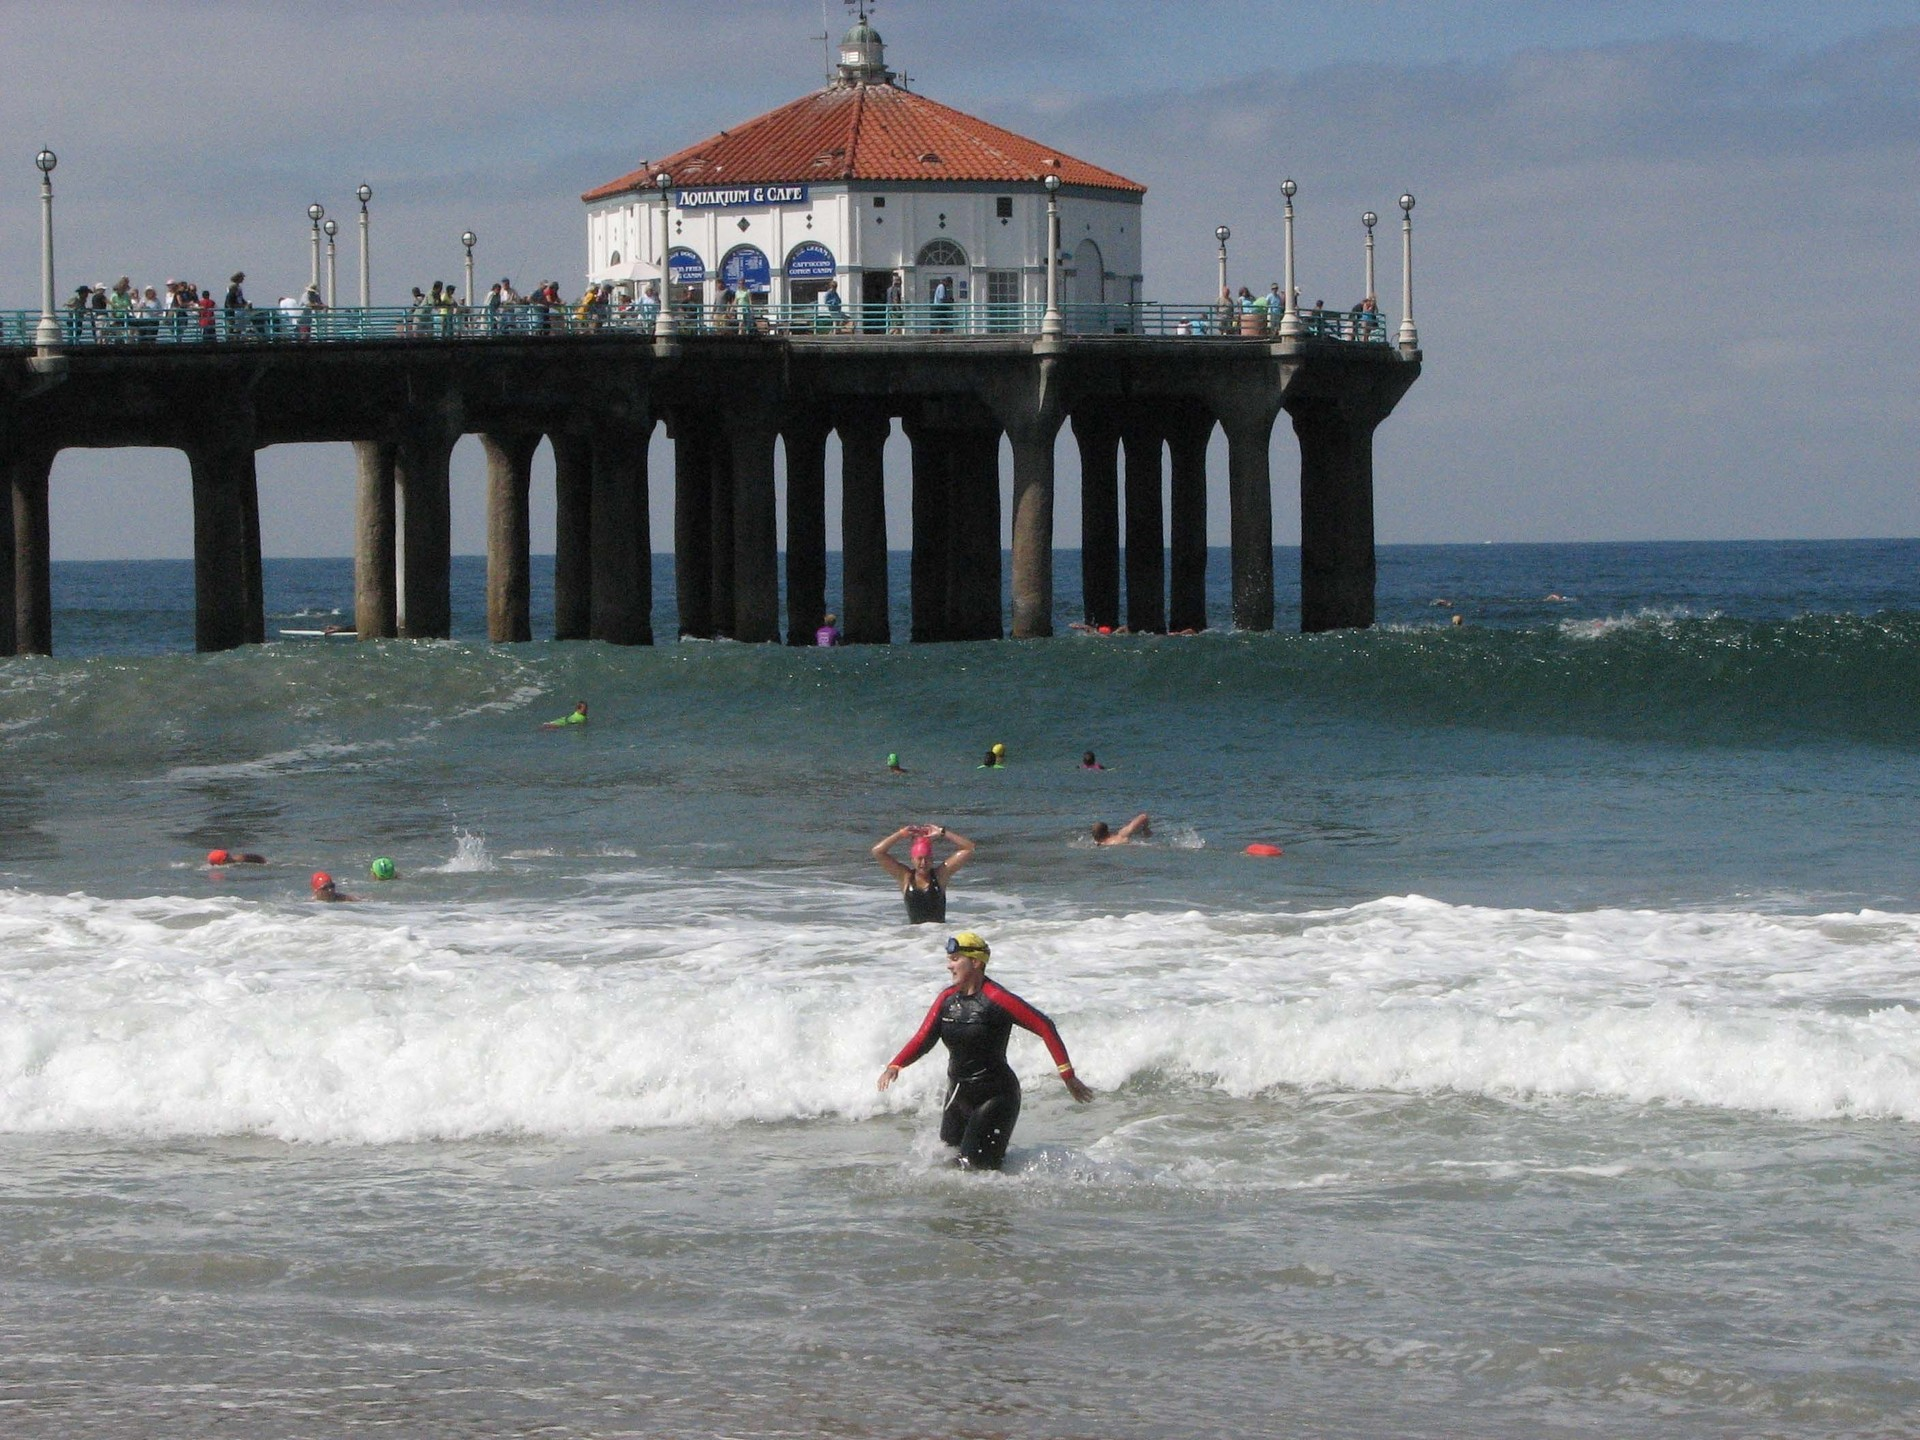 Los Angeles Images Manhattan Beach Hd Wallpaper And Background Photos